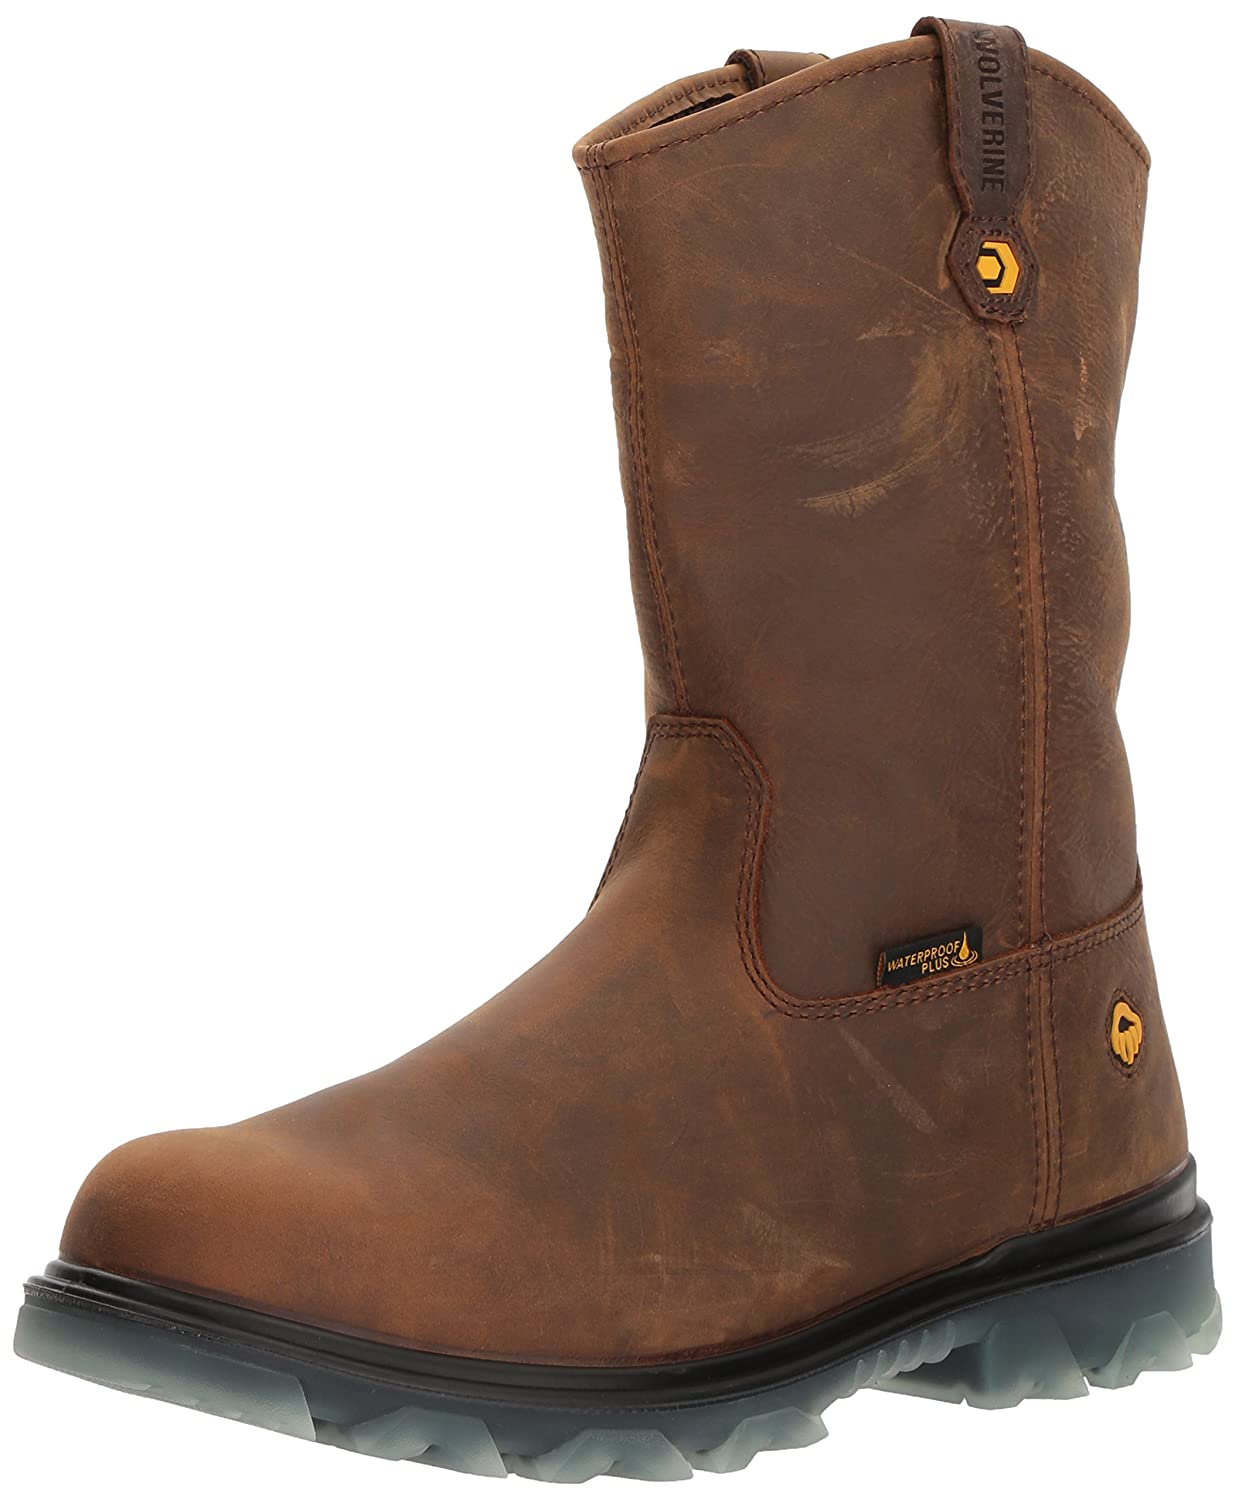 Wolverine メンズ I-90 Waterproof Composite-Toe Wellington B073P5LNDW 11.5 Extra Wide US|Sudan Brown Sudan Brown 11.5 Extra Wide US